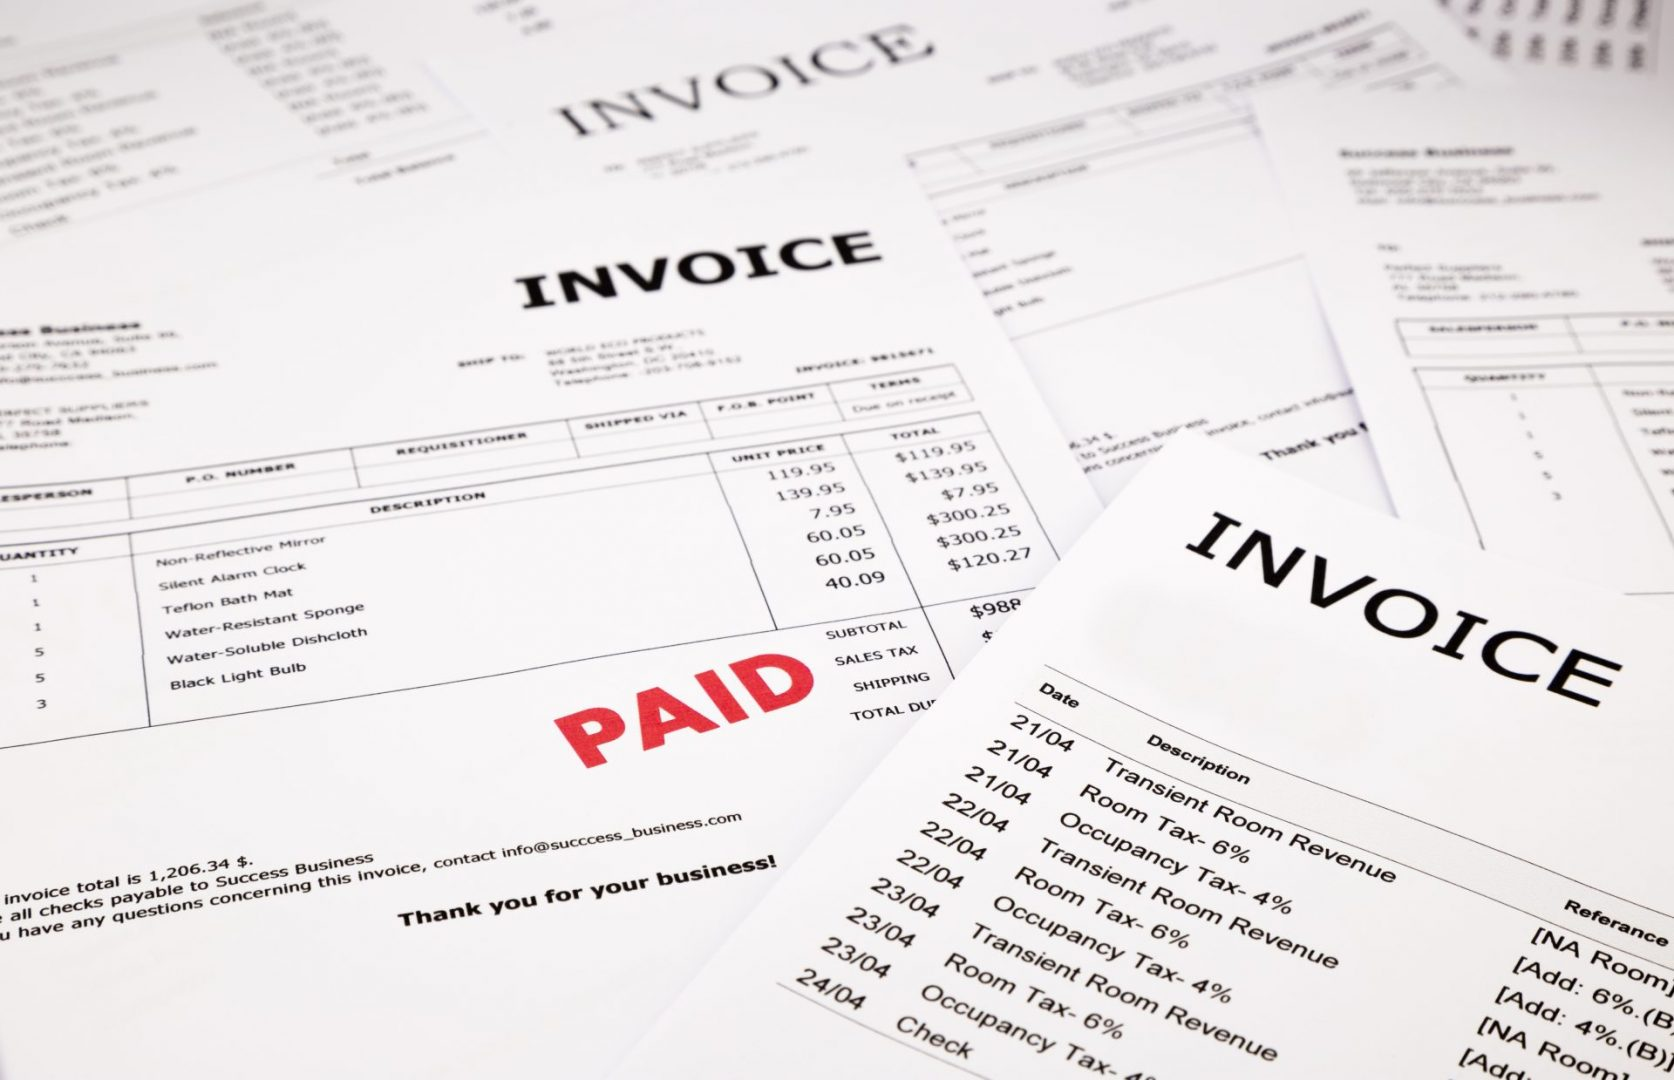 image of invoices for website J&J Commercial Finance